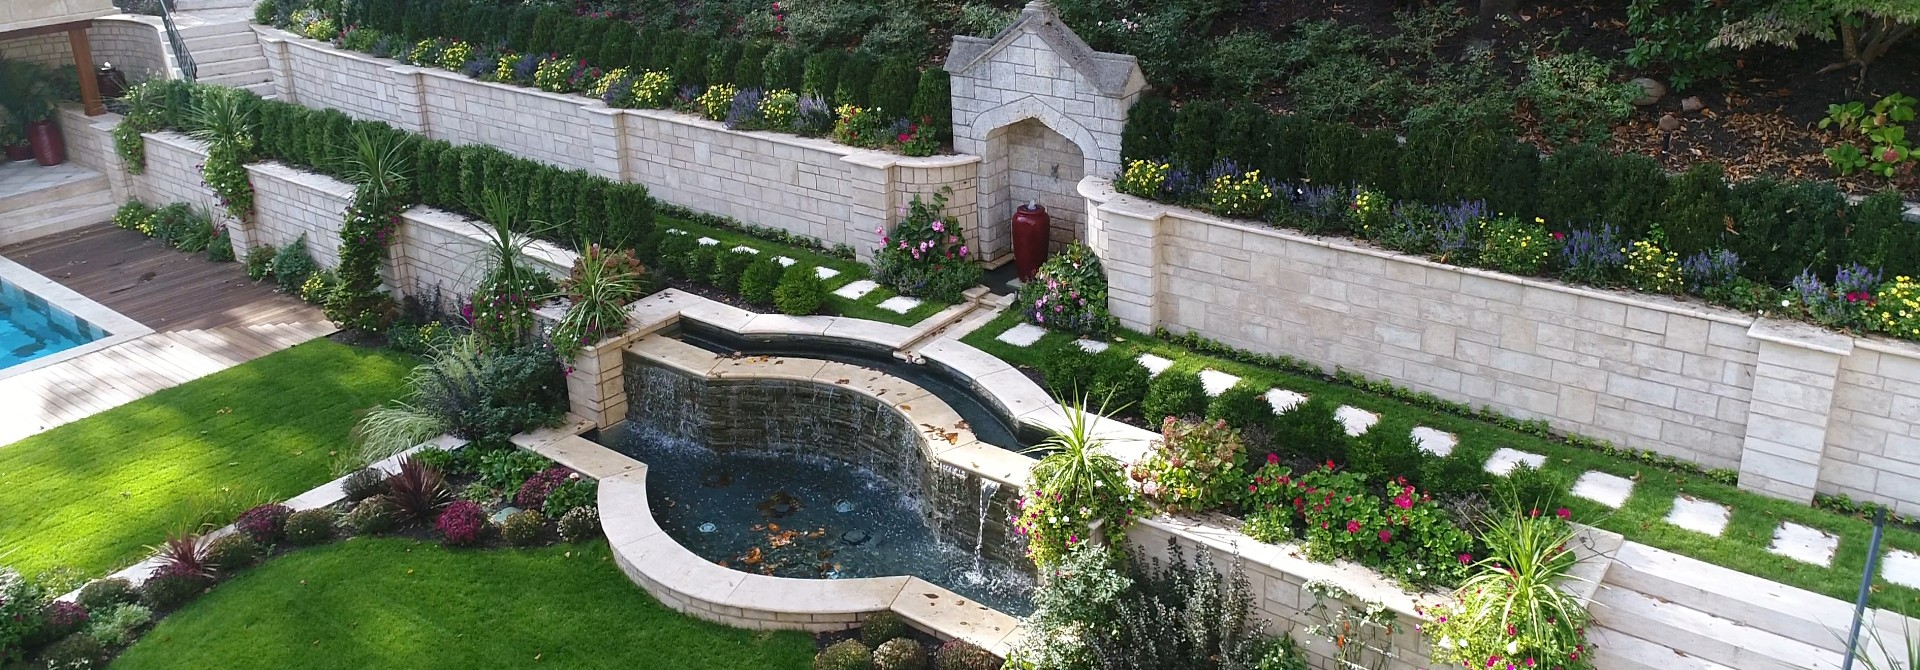 Ivory Arch and Porcelain Pool